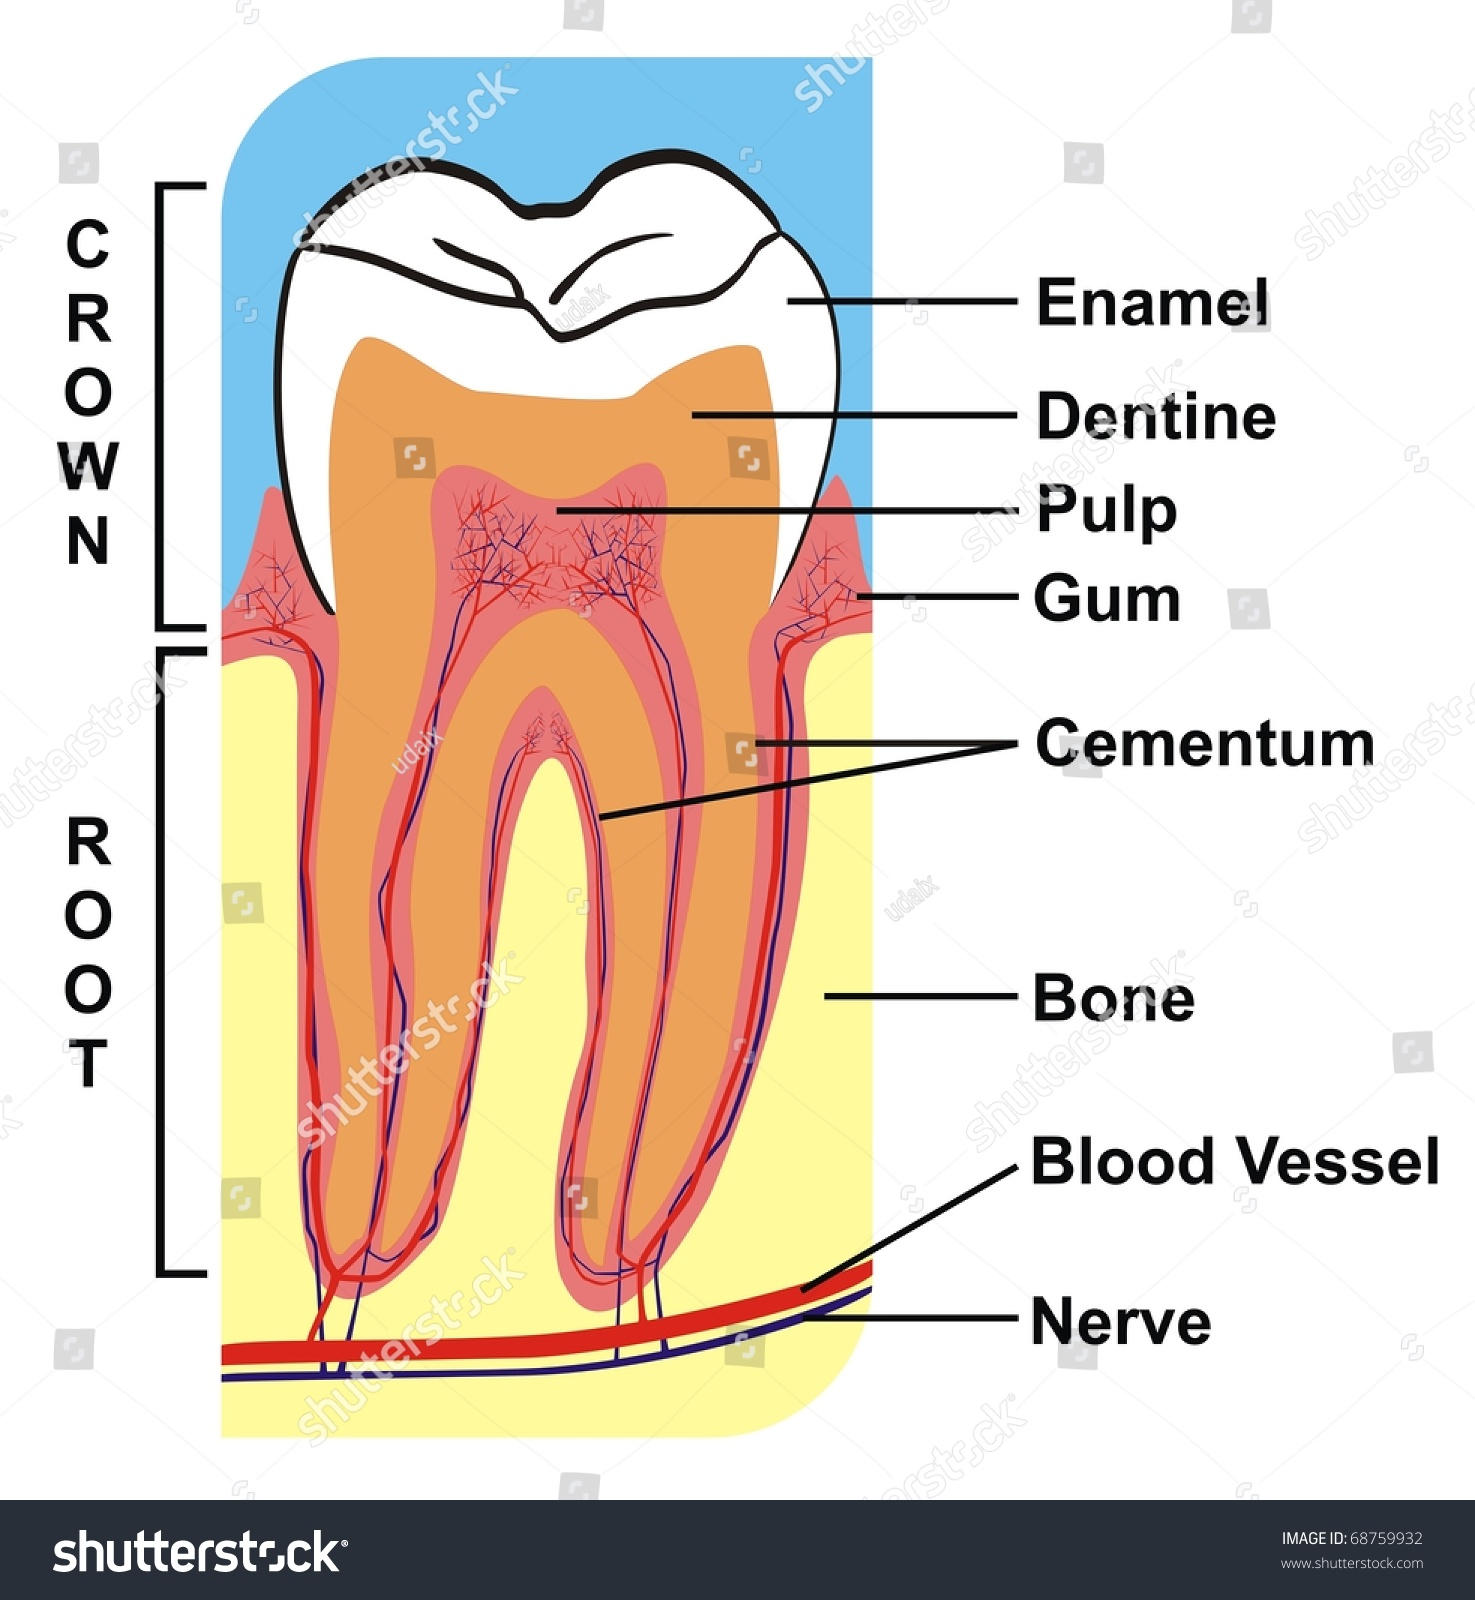 Cross Section Of Tooth Crown Amp Root Including The